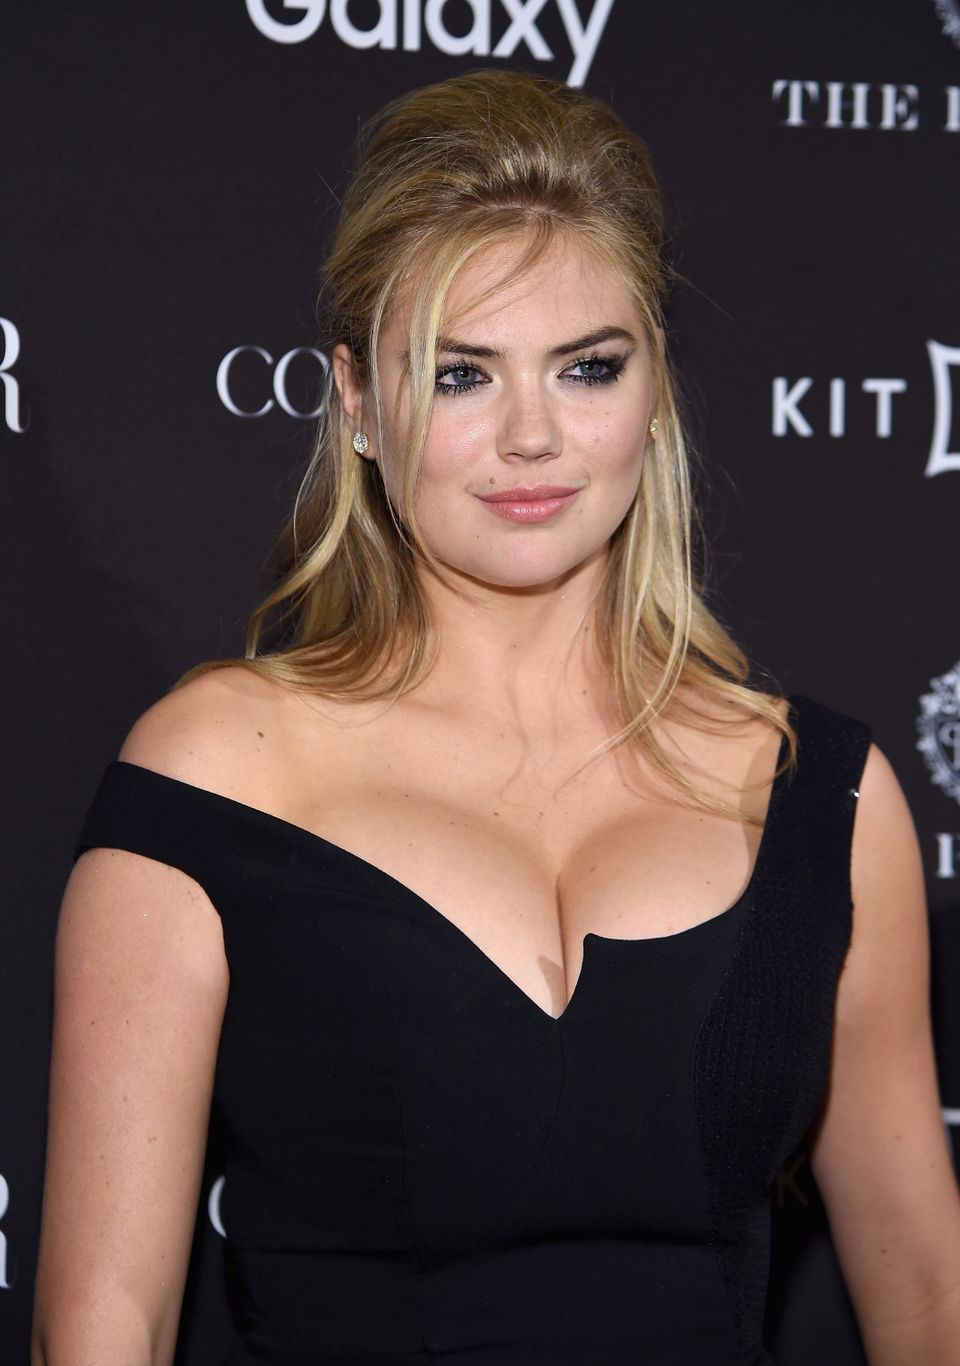 NEW YORK, NY - SEPTEMBER 16:  Kate Upton attends the 2015 Harper's BAZAAR ICONS Event at The Plaza Hotel on September 16, 201